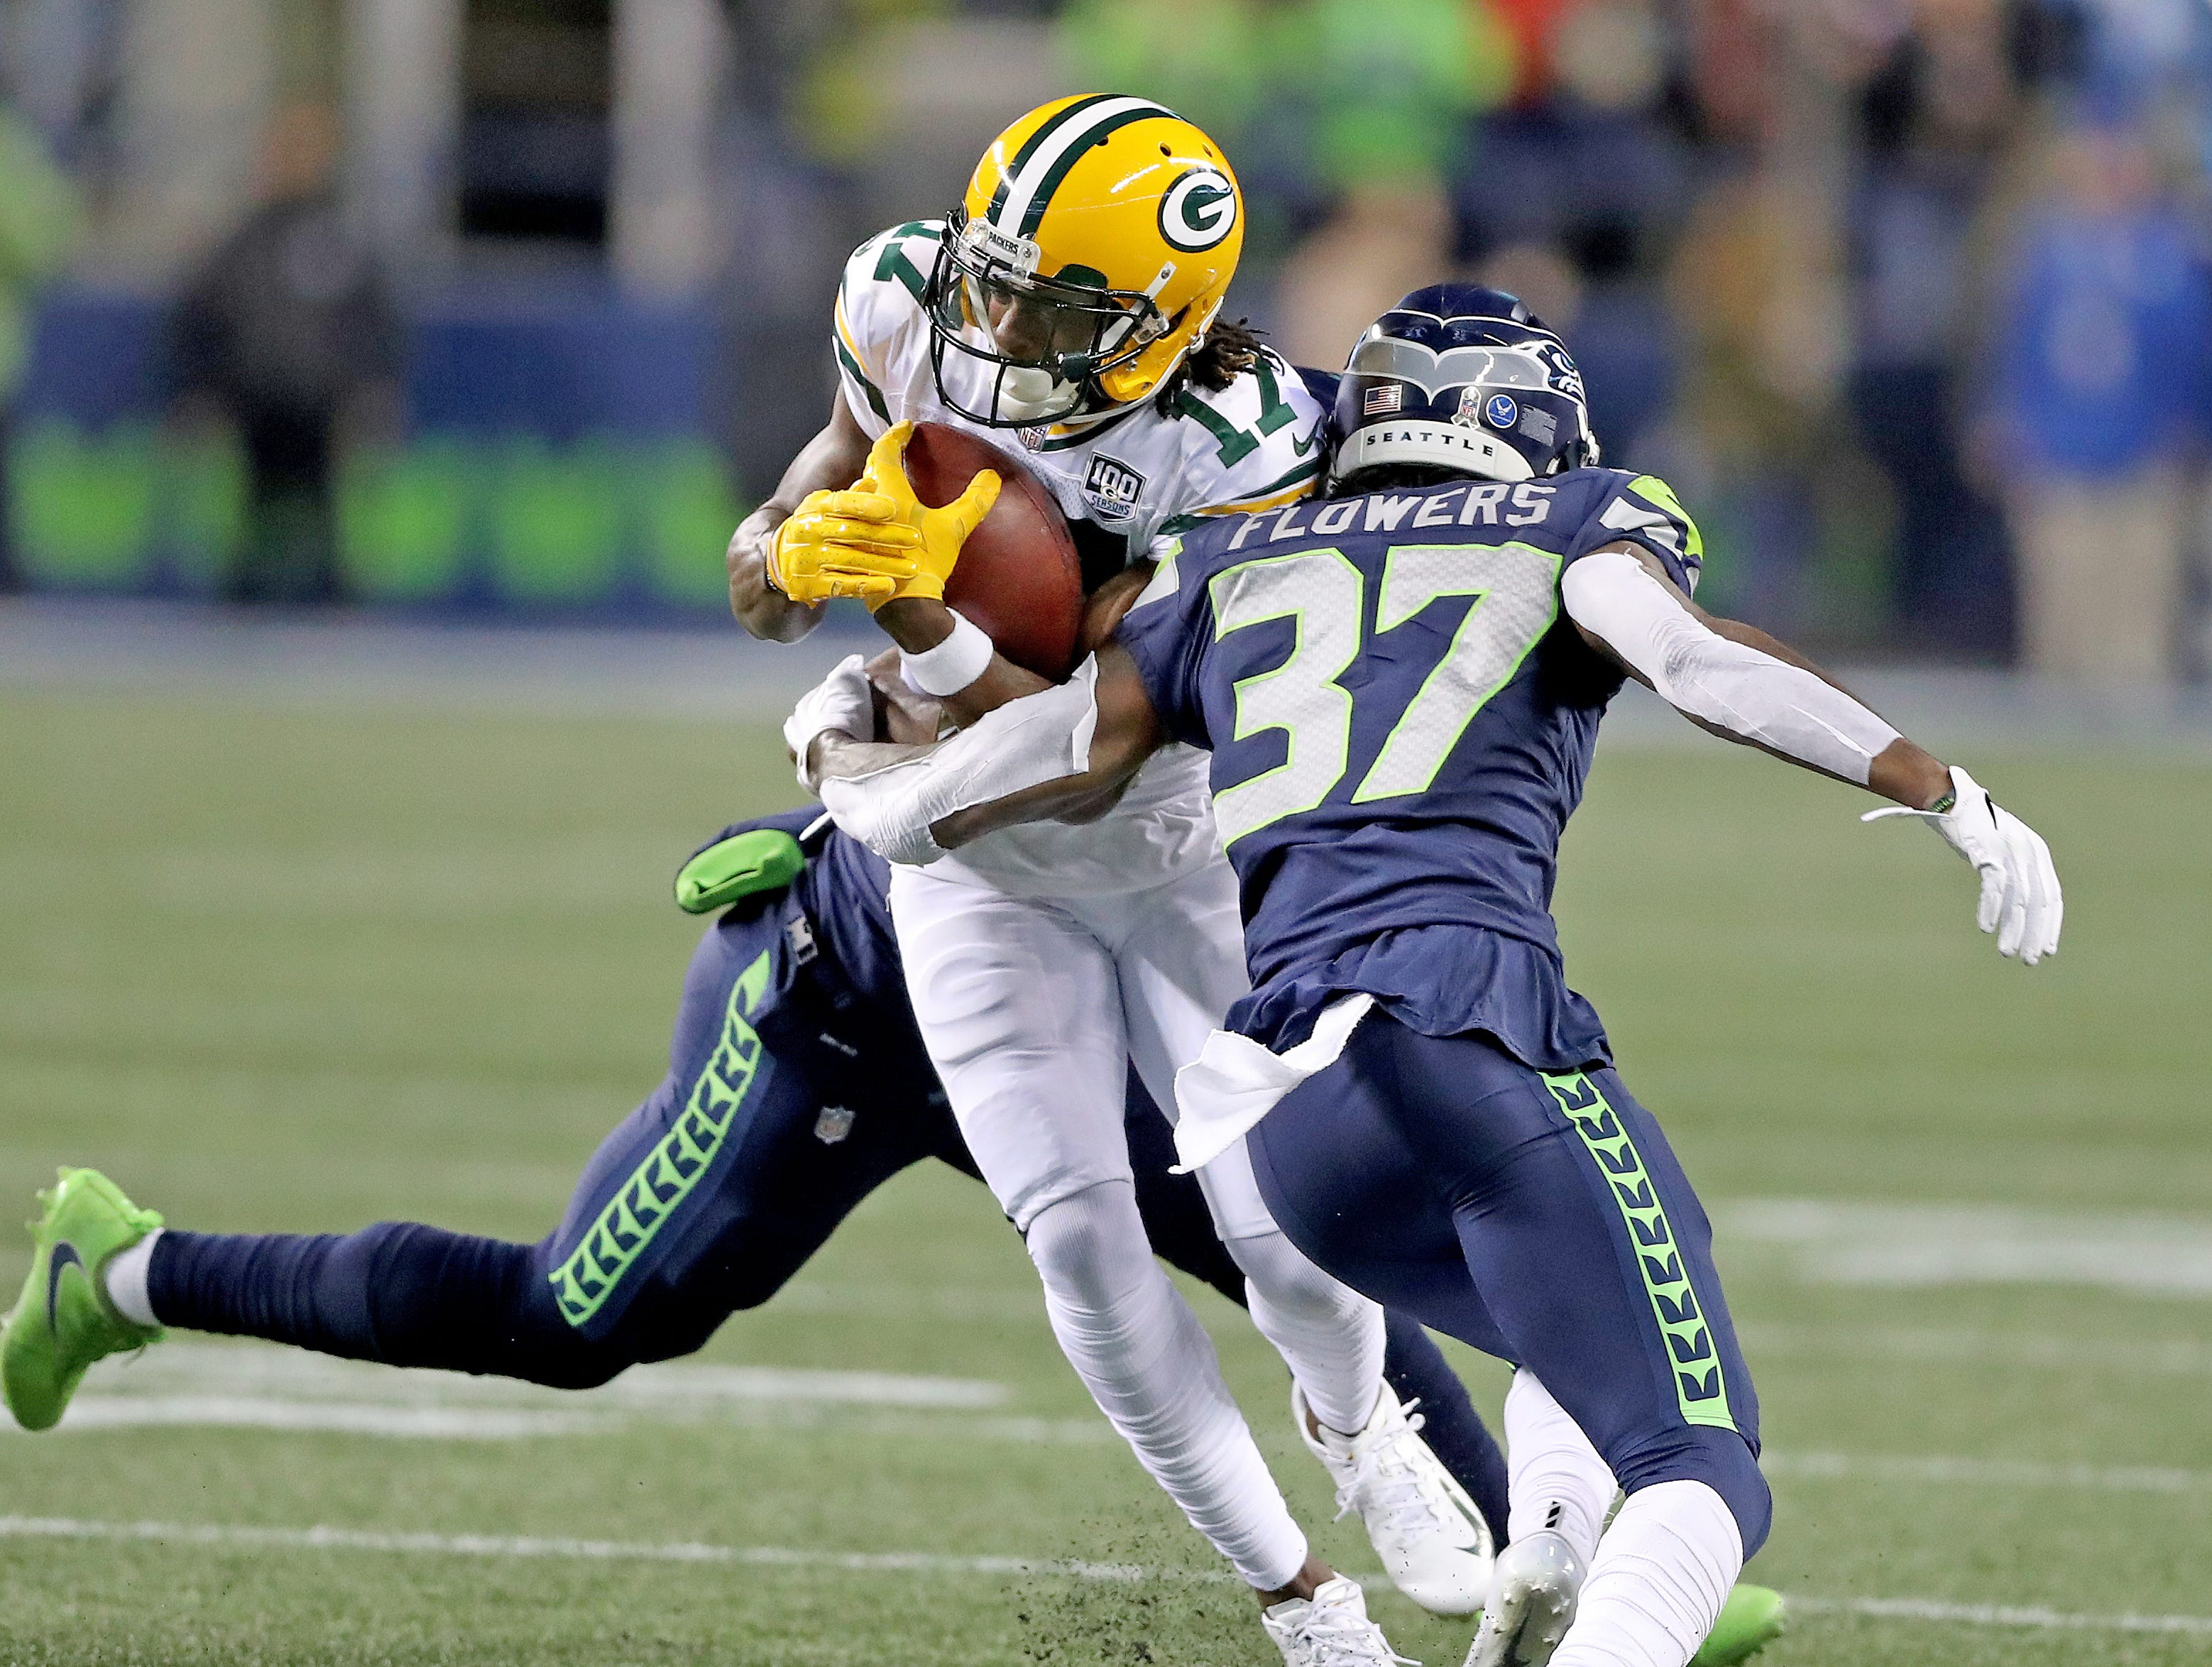 Green Bay Packers wide receiver Davante Adams (17) tries to split two defenders against the Seattle Seahawks at CenturyLink Field Thursday, November 15, 2018 in Seattle, WA. Jim Matthews/USA TODAY NETWORK-Wis